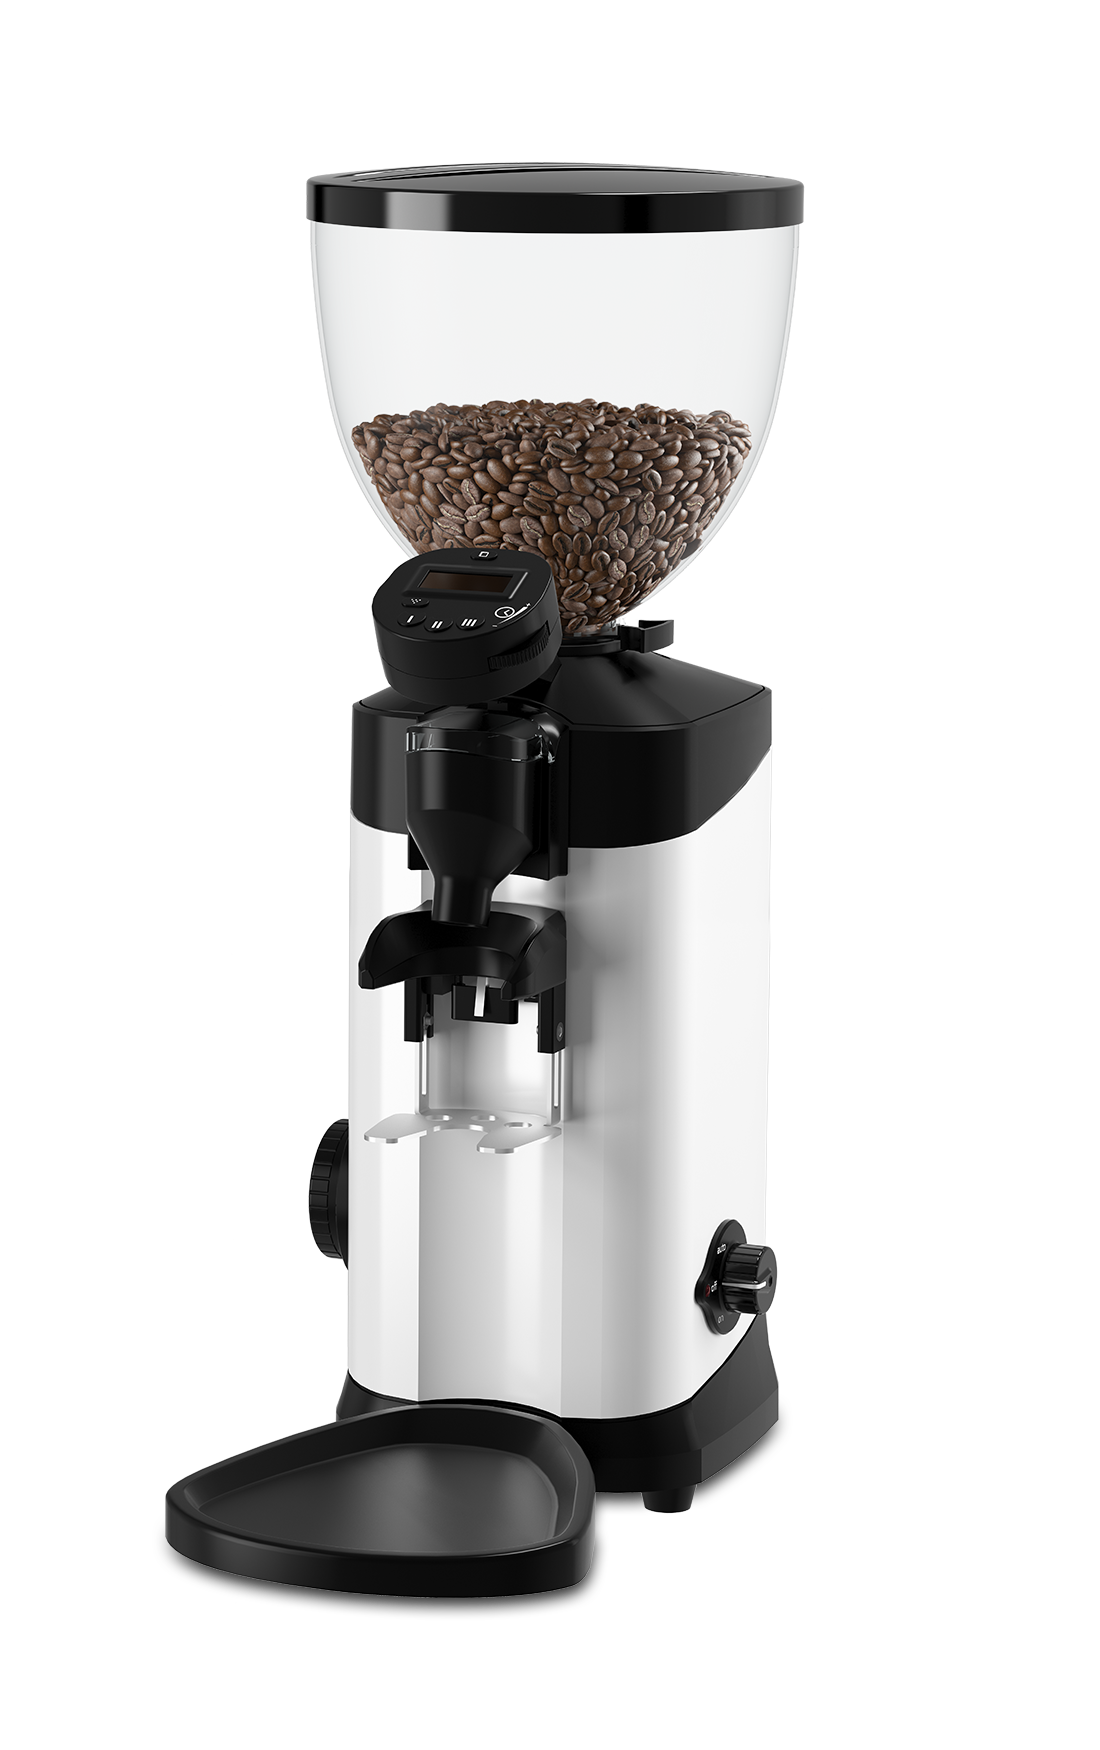 HeyCafe TITAN II Ver 2.0 ODG V1 / V3 on demand espresso grinder